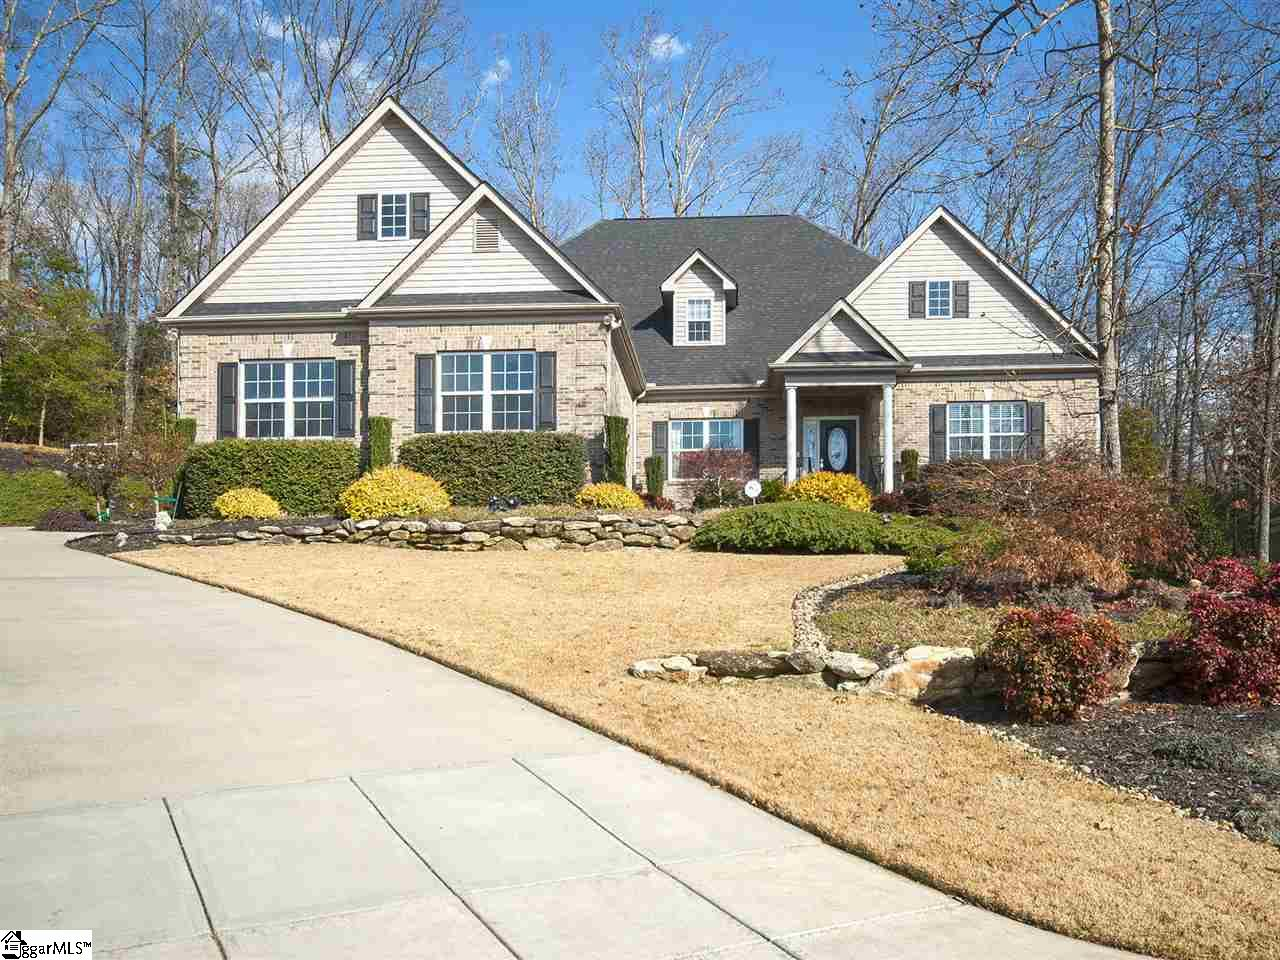 15 Bendsbrook Way, Fountain Inn, SC 29644